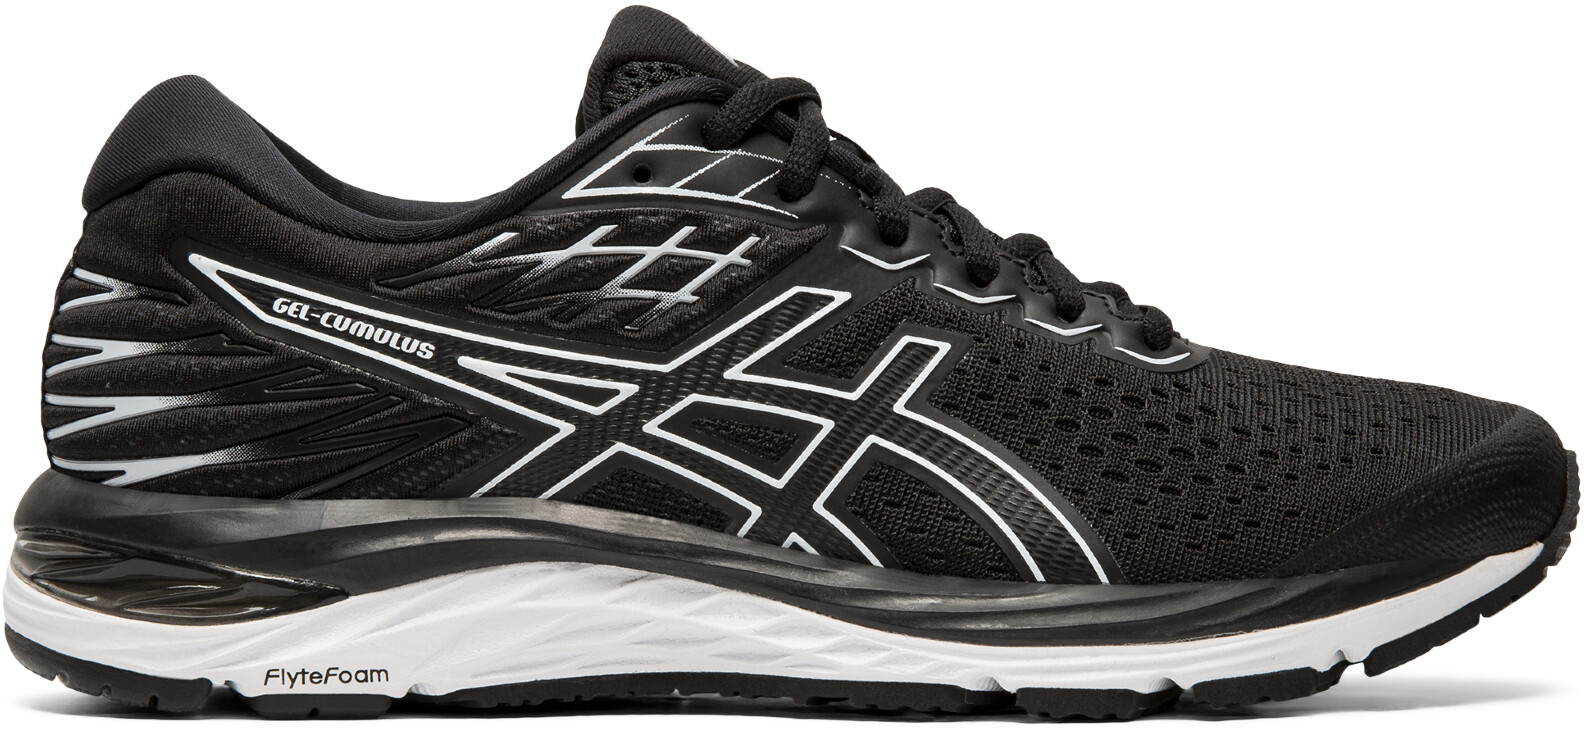 asics Gel-Cumulus 21 Sko Damer, black/white | Running shoes